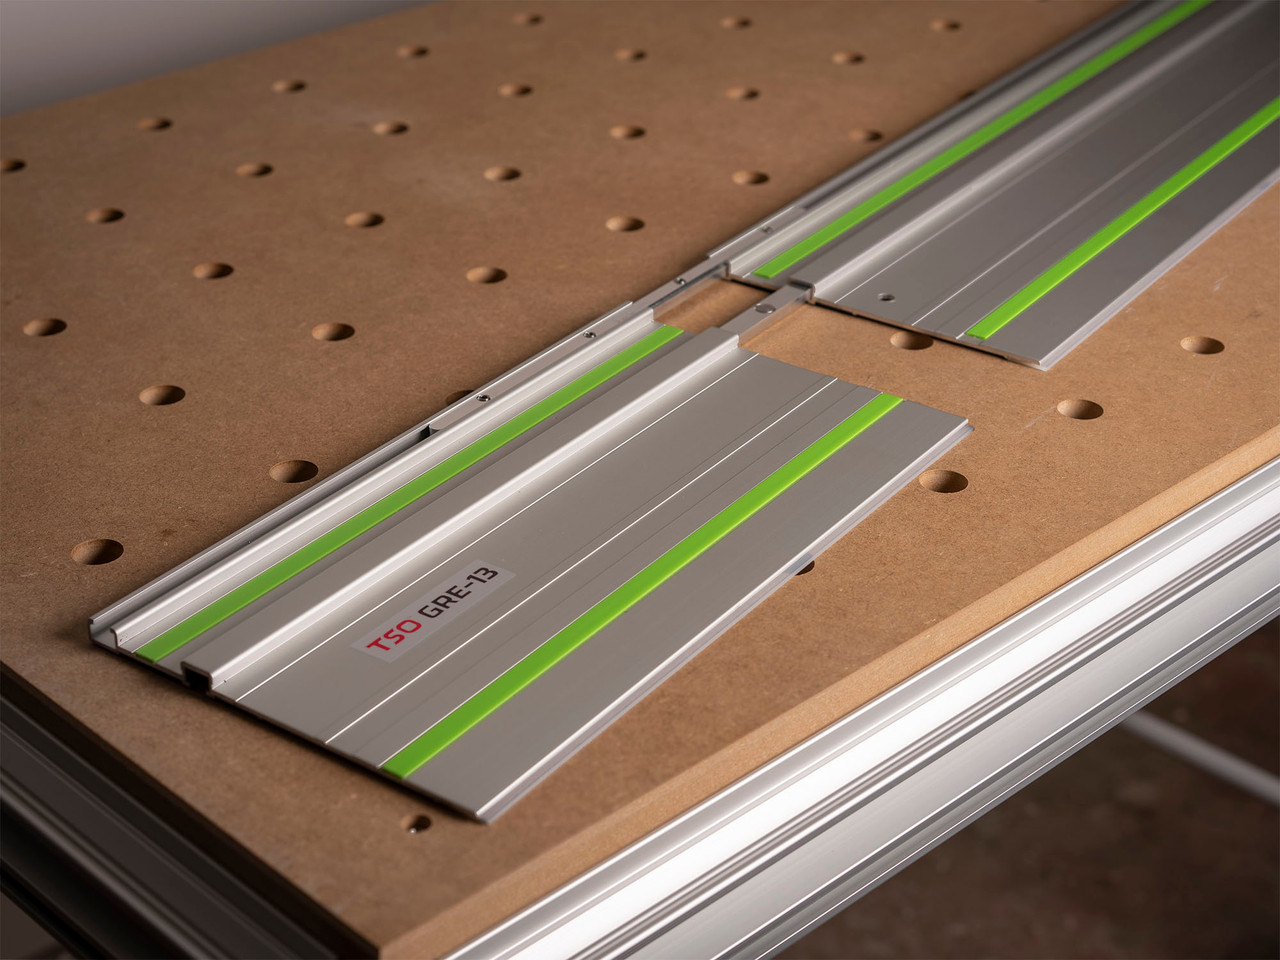 The GRE-13 rapidly connects to Festool guide rails as shown here.